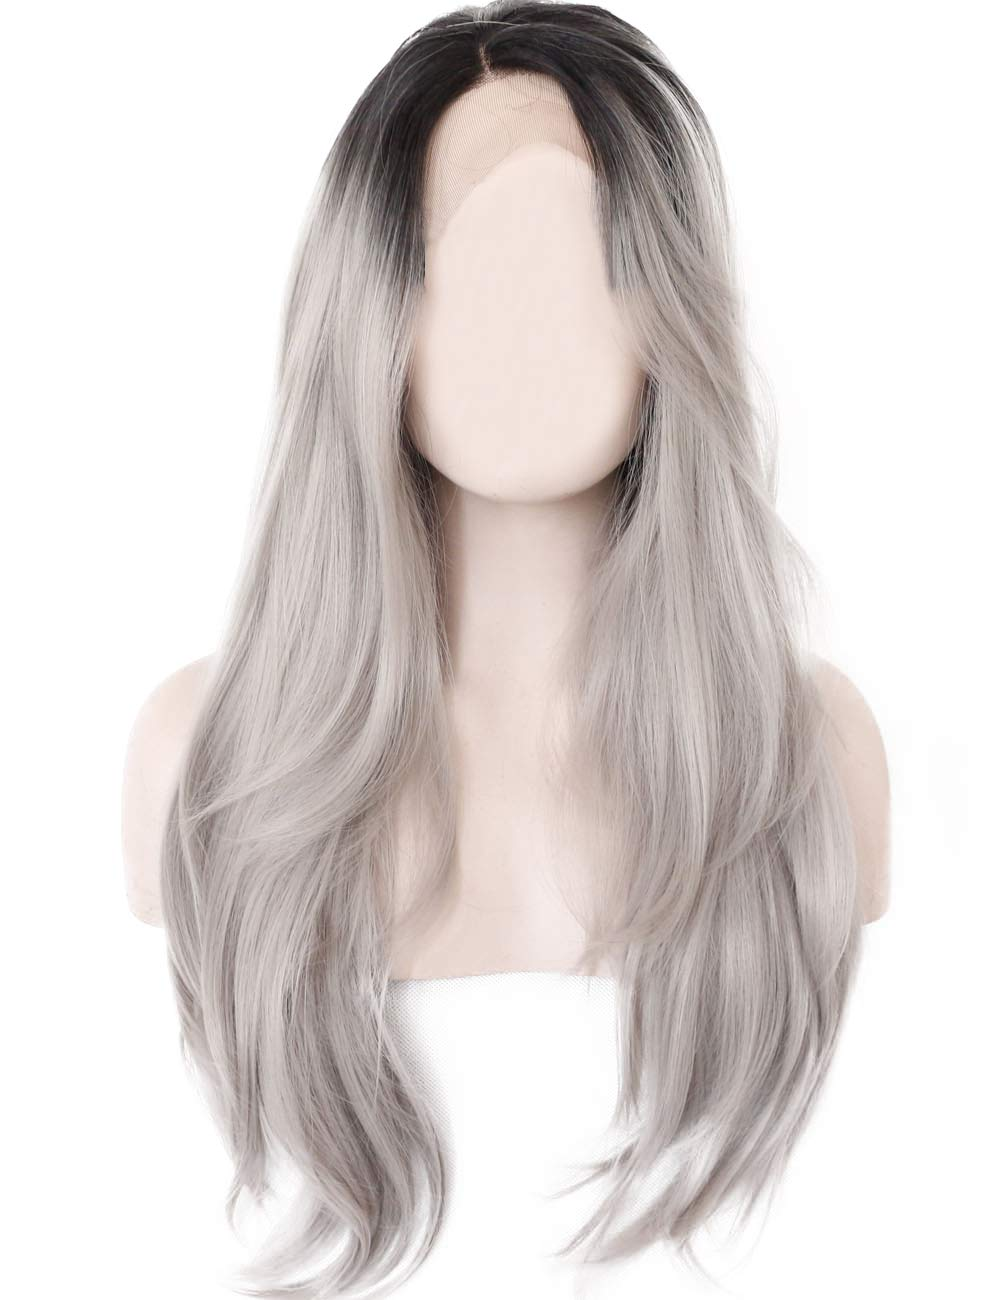 K'ryssma Ombre Gray 2 Tones Synthetic Lace Front Wig Dark Roots Long Natural Straight Silver Grey Replacement Hair Wigs For Women Heat Resistant Fiber Hair Half Hand Tied 22 Inches by K'ryssma